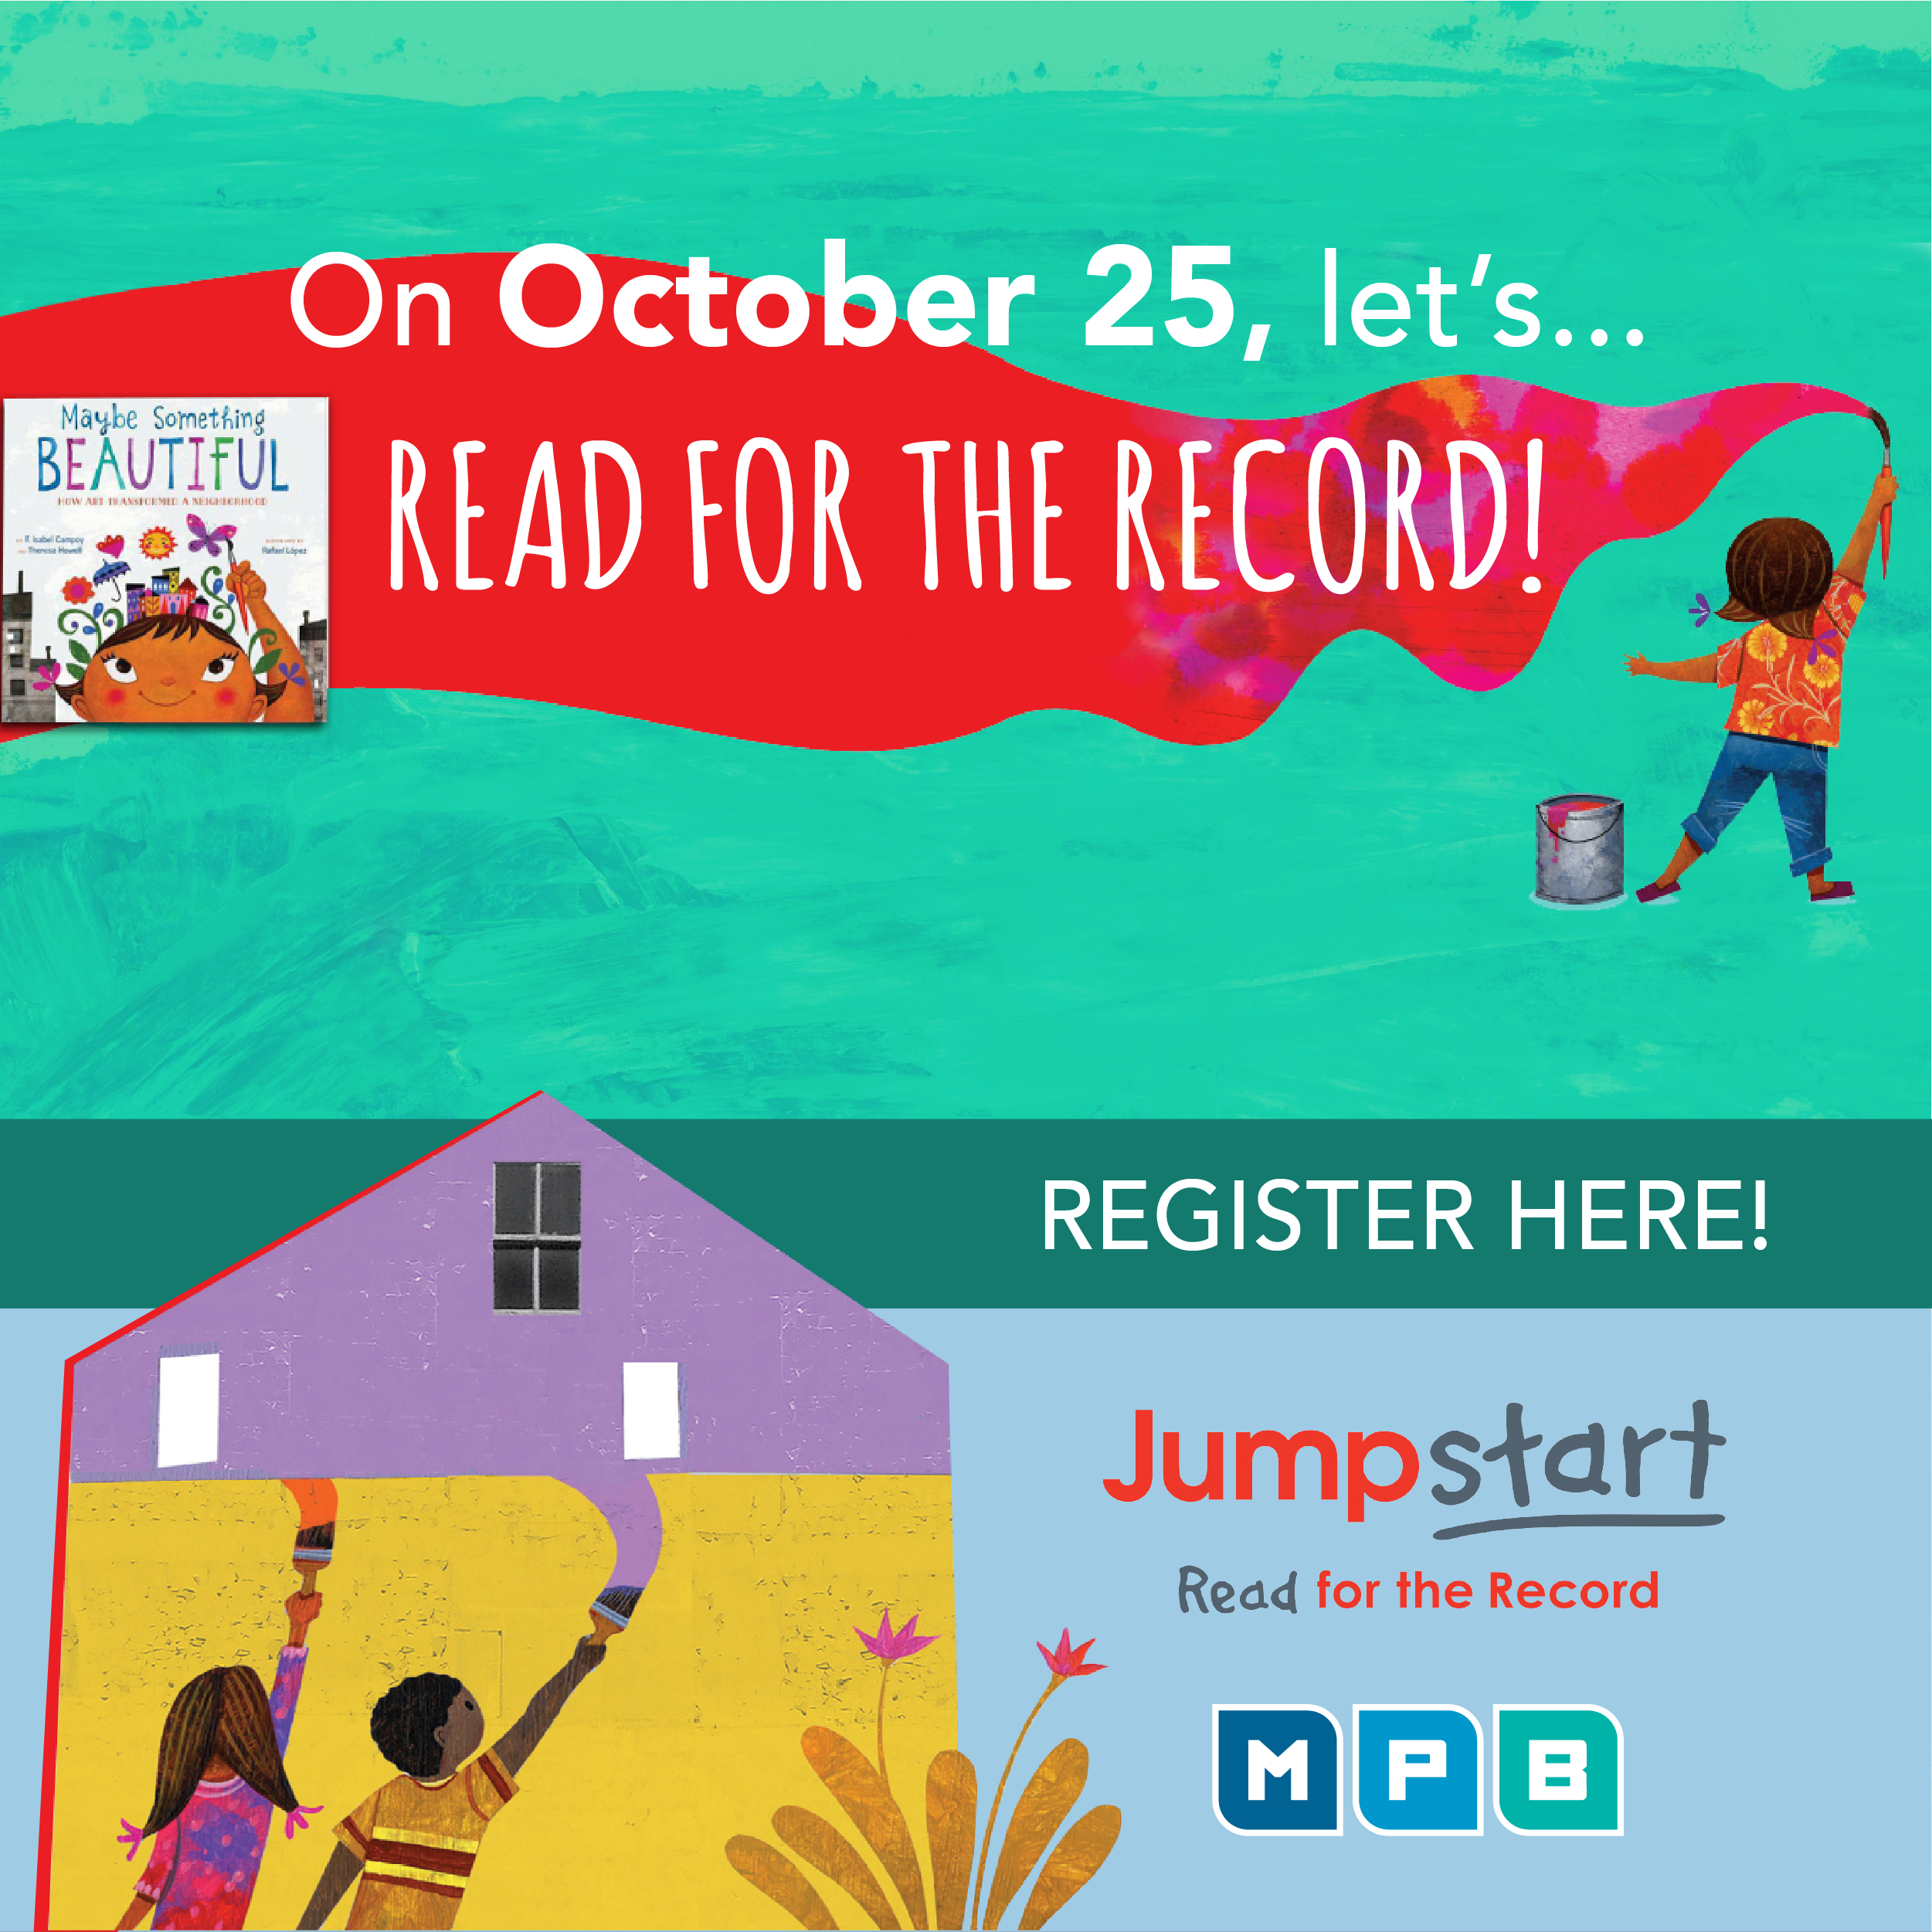 Register now to Read for The Record with MPB!